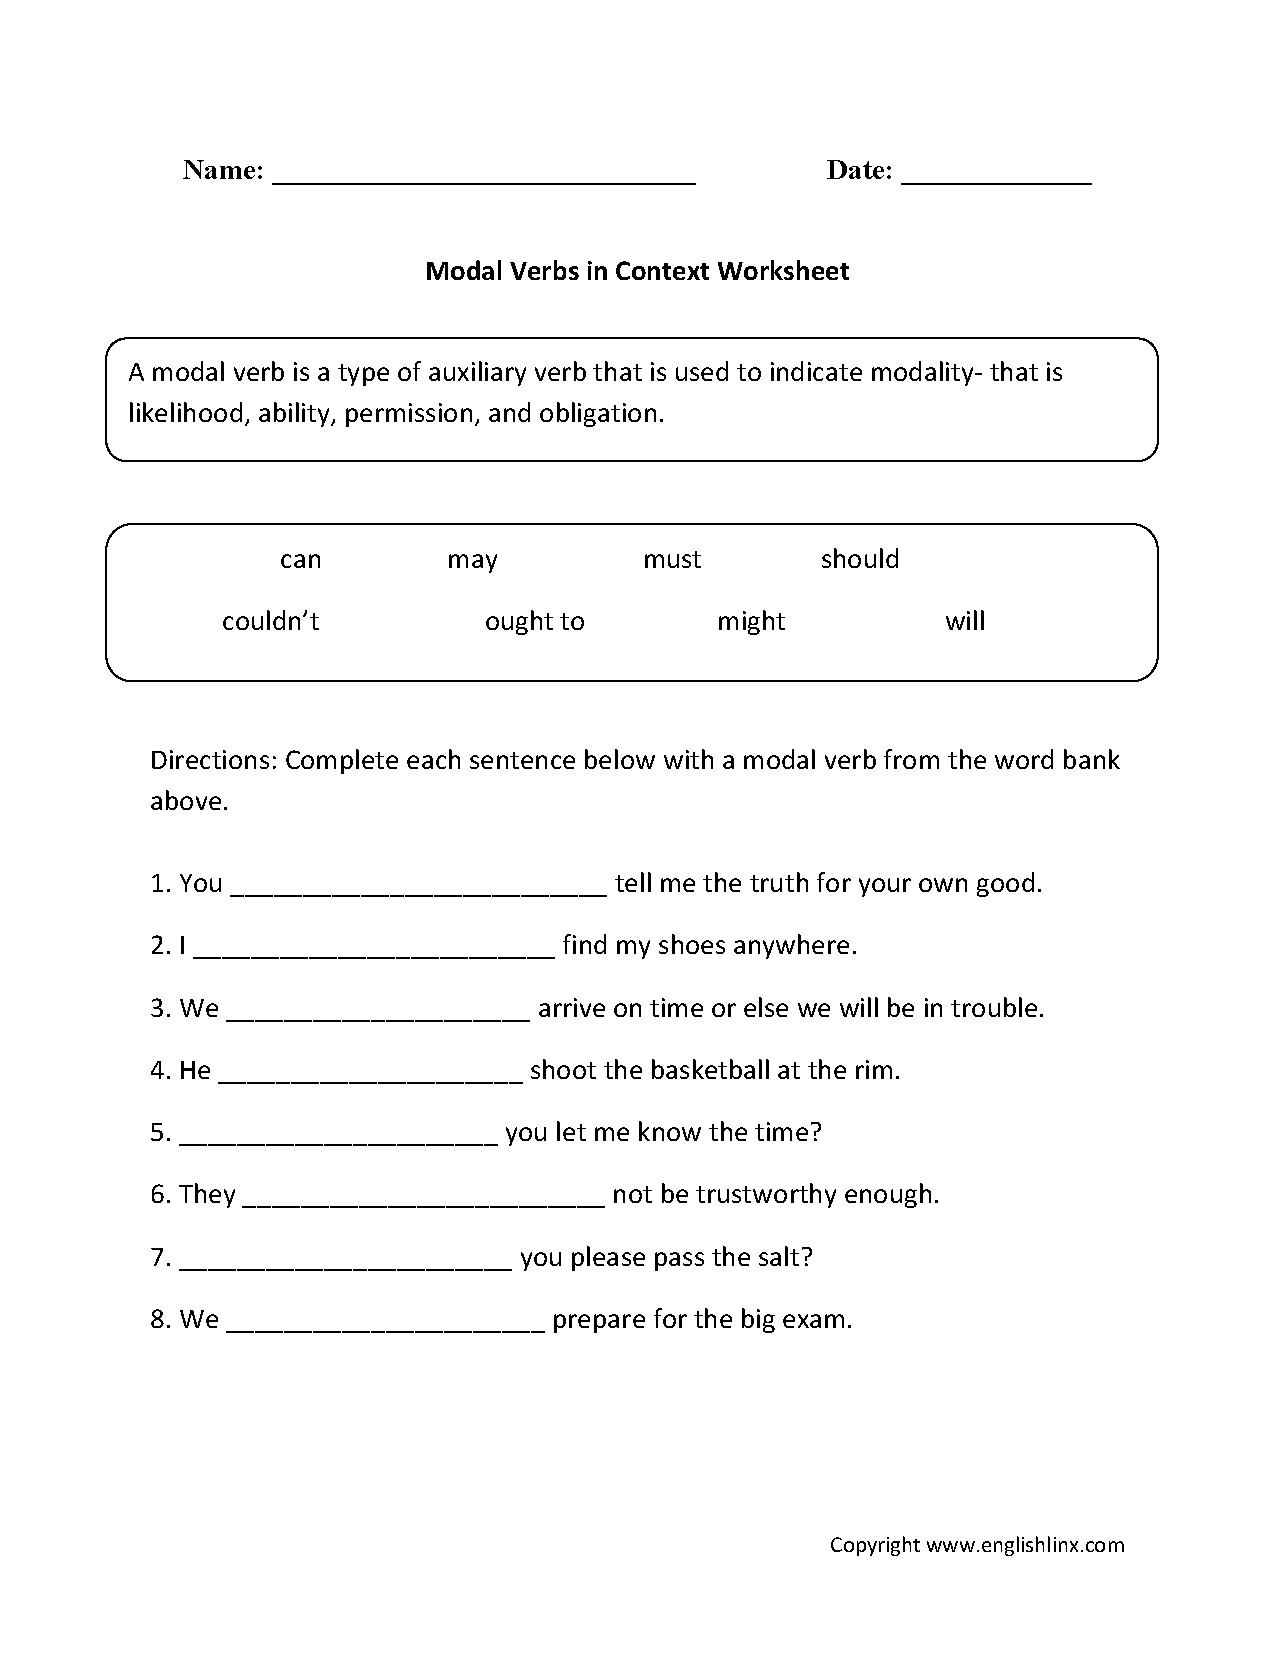 Verb Worksheet For Class 4